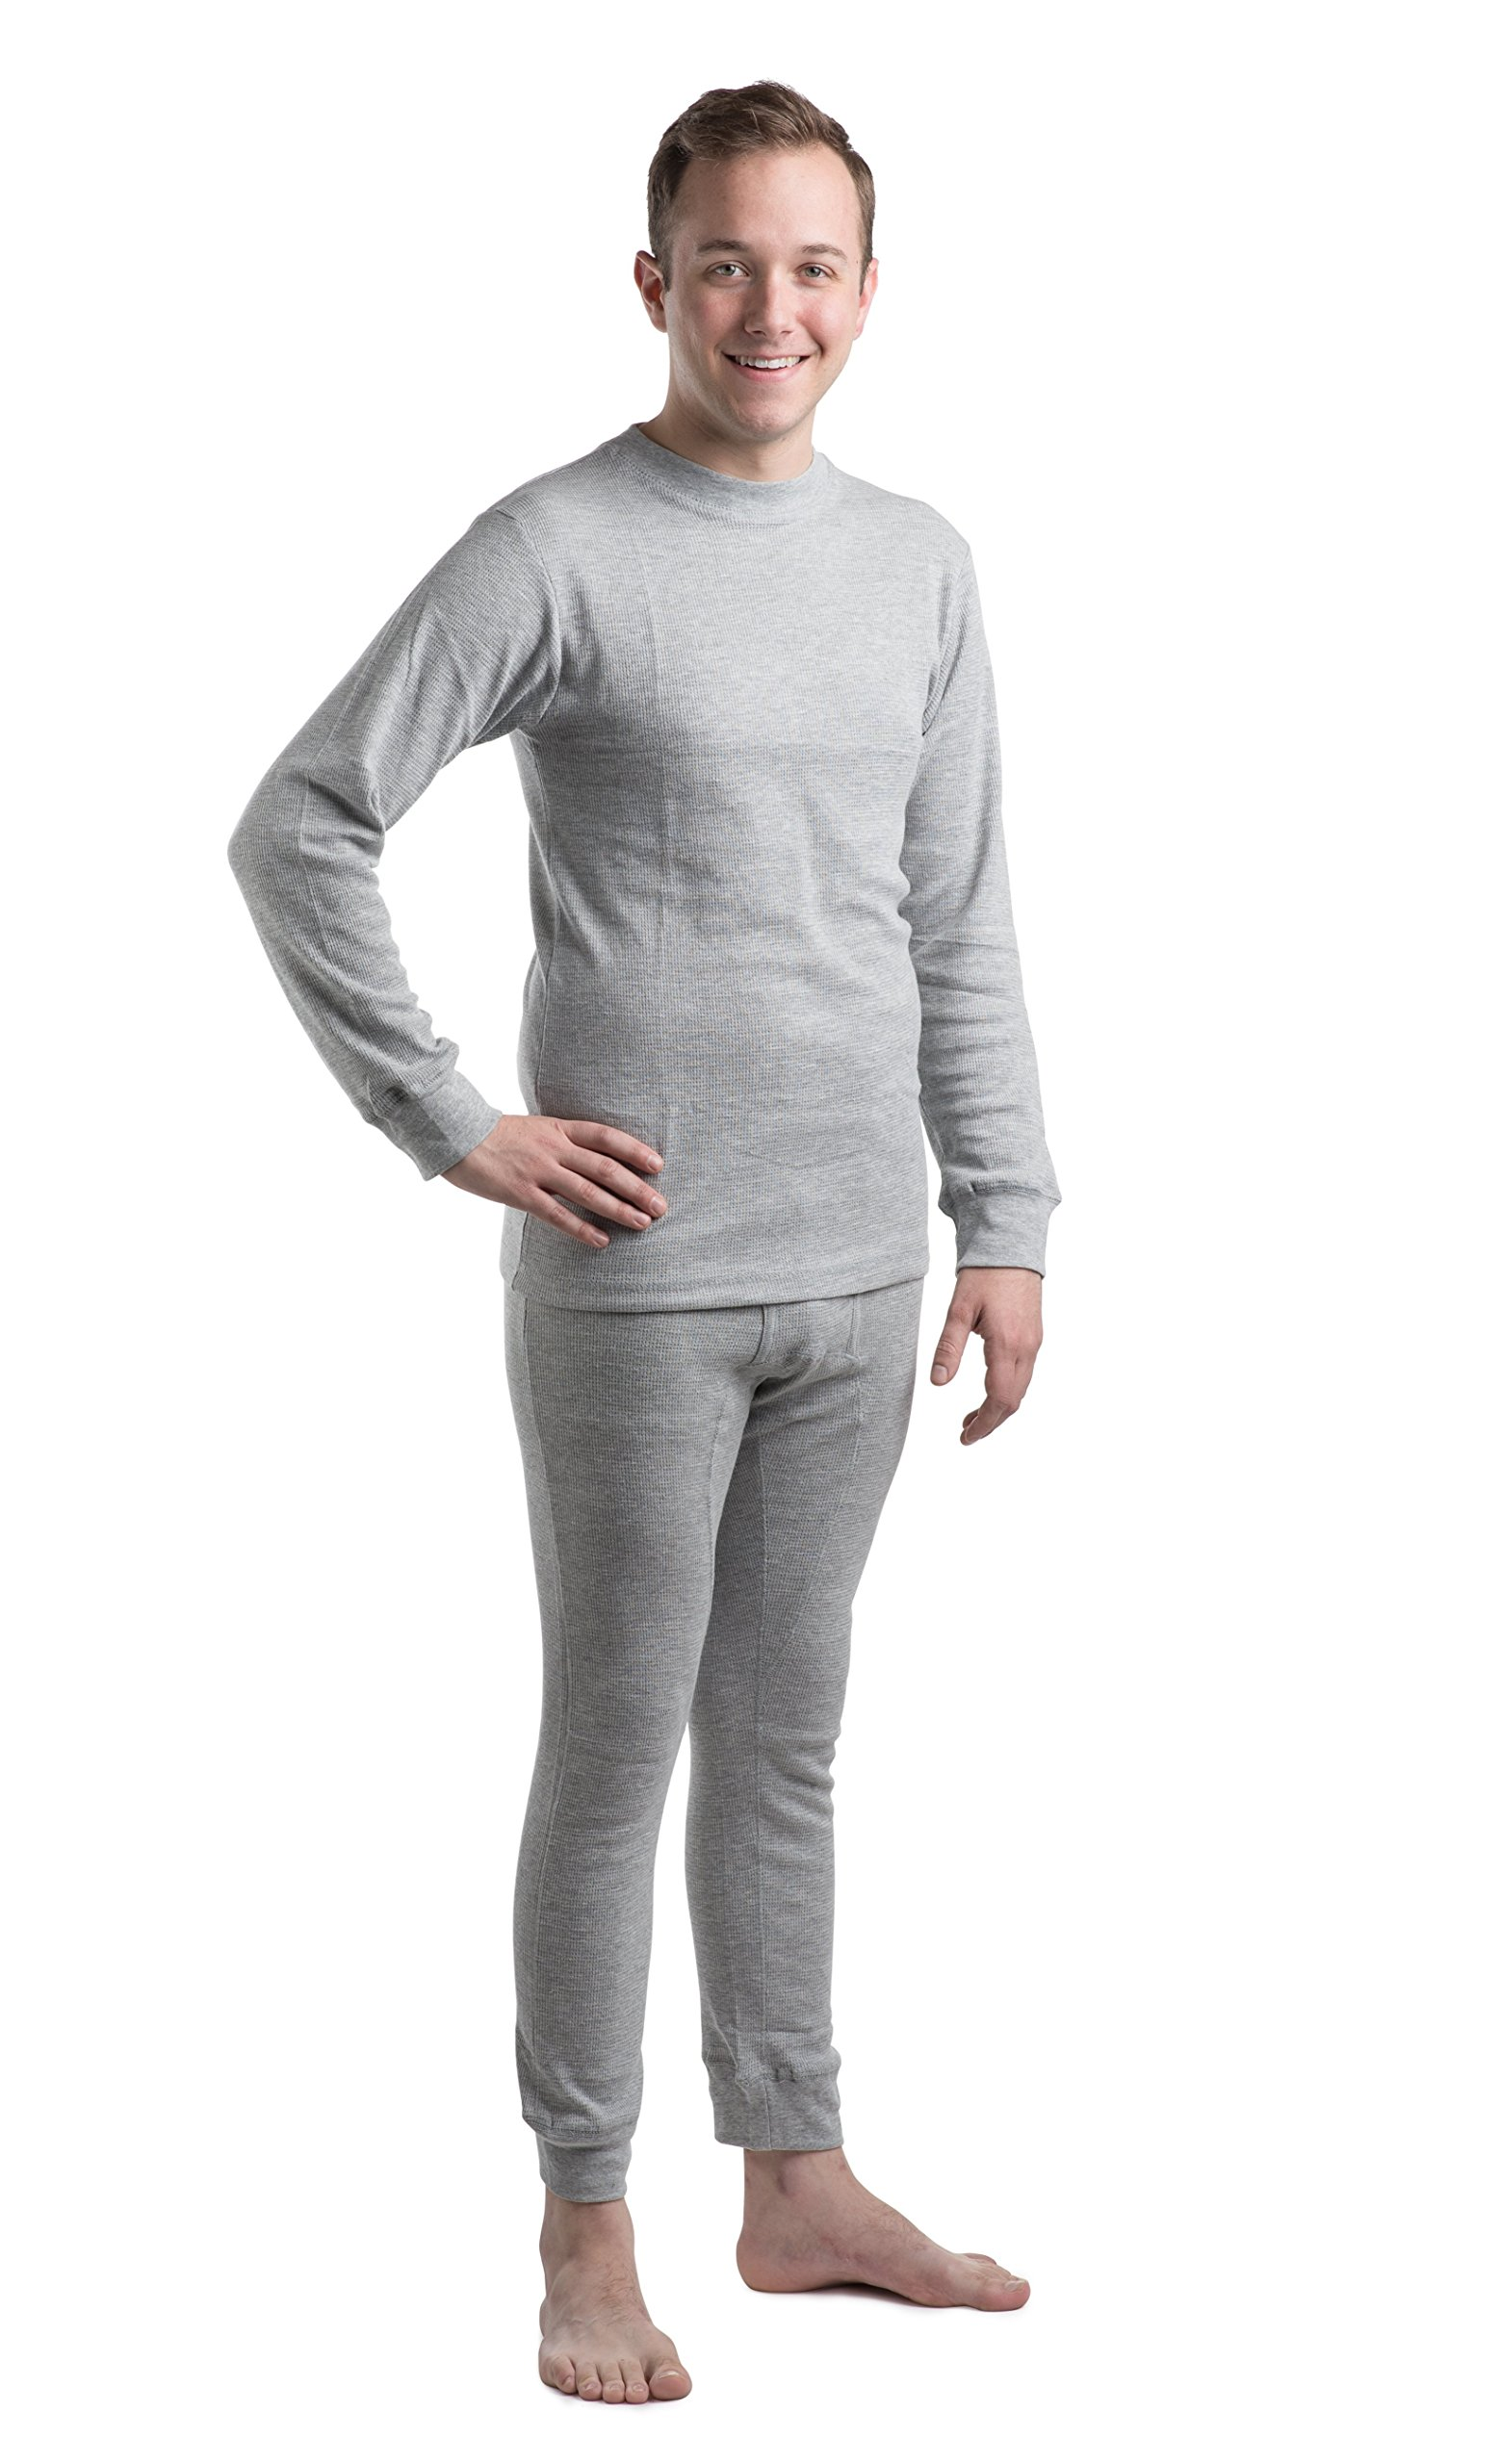 Beged Men's Thermal Long John Cotton Underwear Set – Long Sleeve Undershirt & Legging | Heat Retention, Made for Cold, Frozen Weather | Skinny Fitted Bed Time Pajamas 2XL Grey